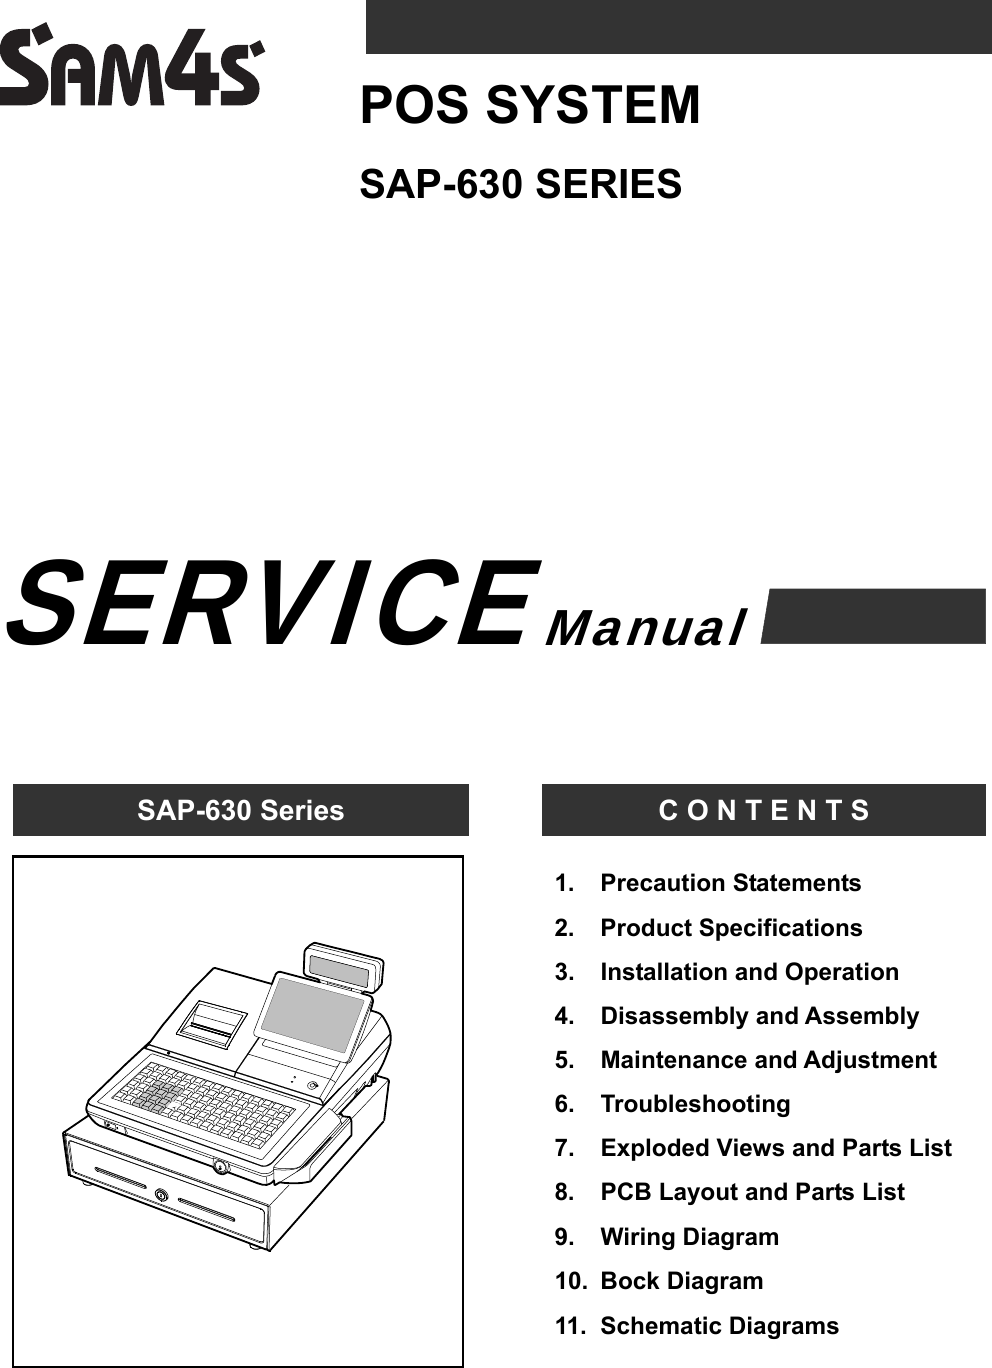 Sap User Guide Diagram Of Pre1997 Bf50a Lra Honda Outboard Engine Lower Case Copa Transactions Array Shin Heung Precision 630 Pos System Manual Rh Usermanual Wiki